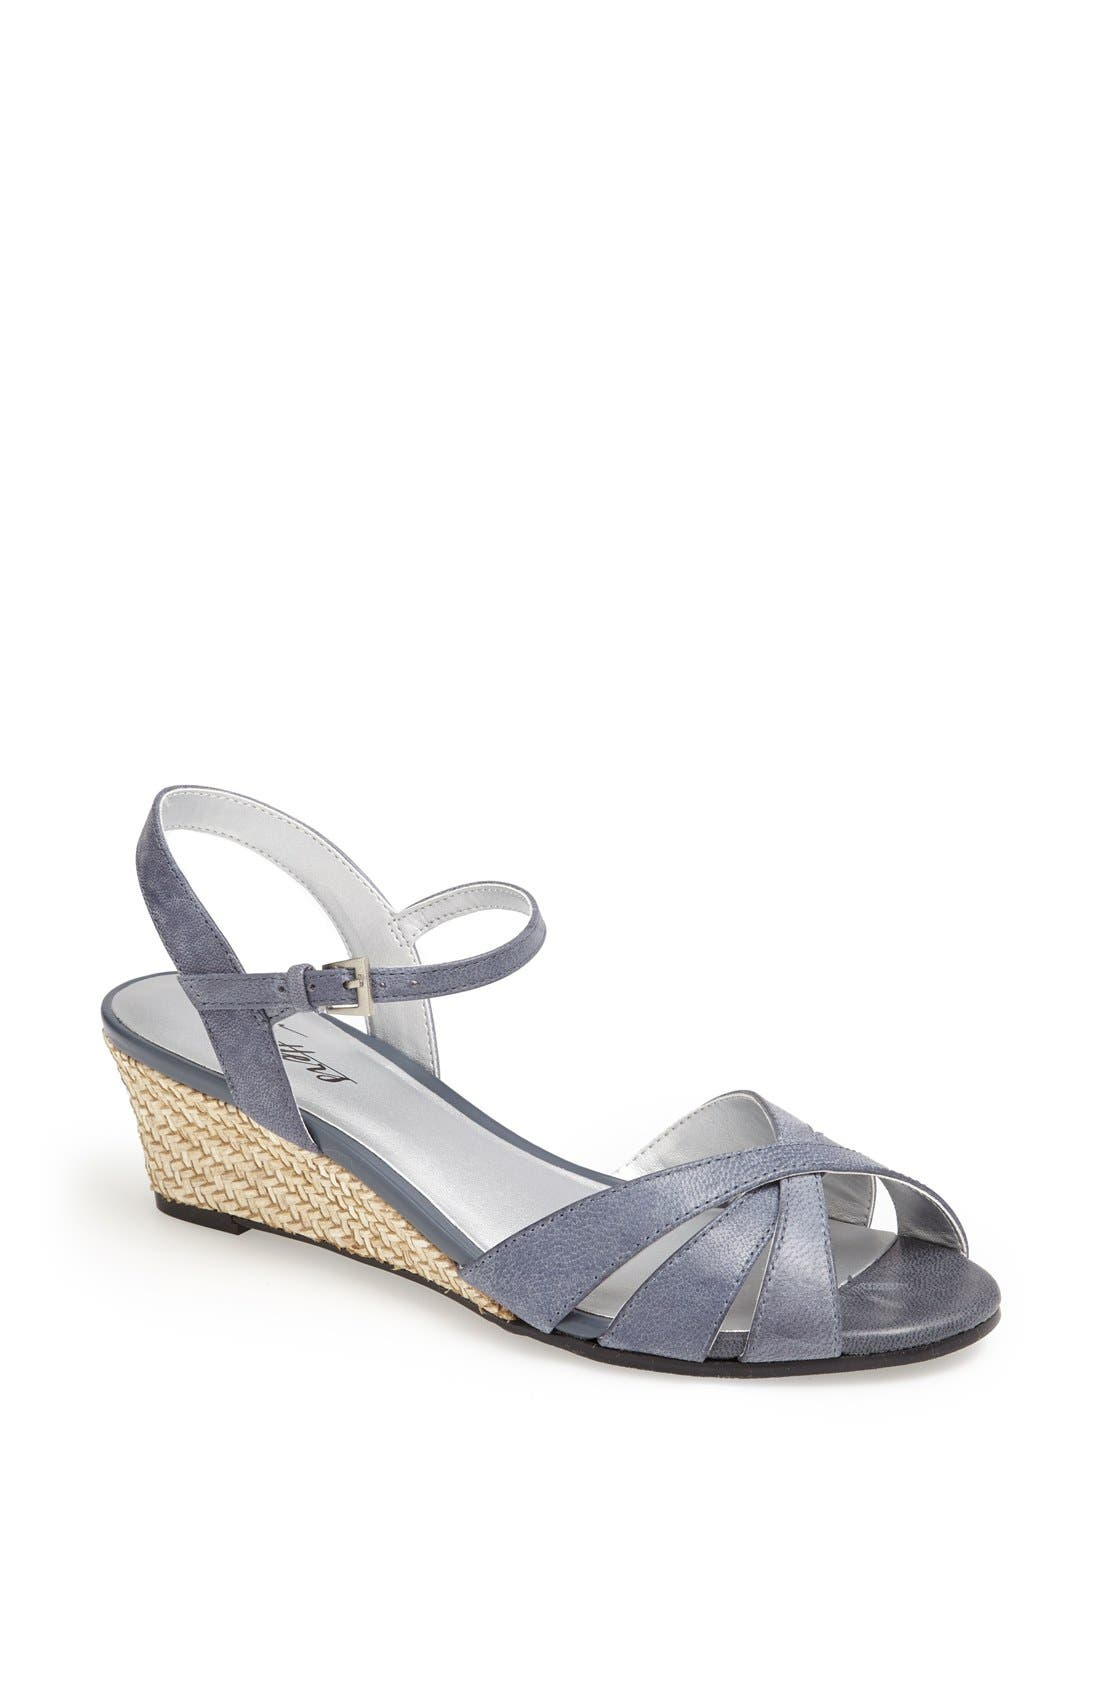 'Mickey' Wedge Sandal,                             Main thumbnail 9, color,